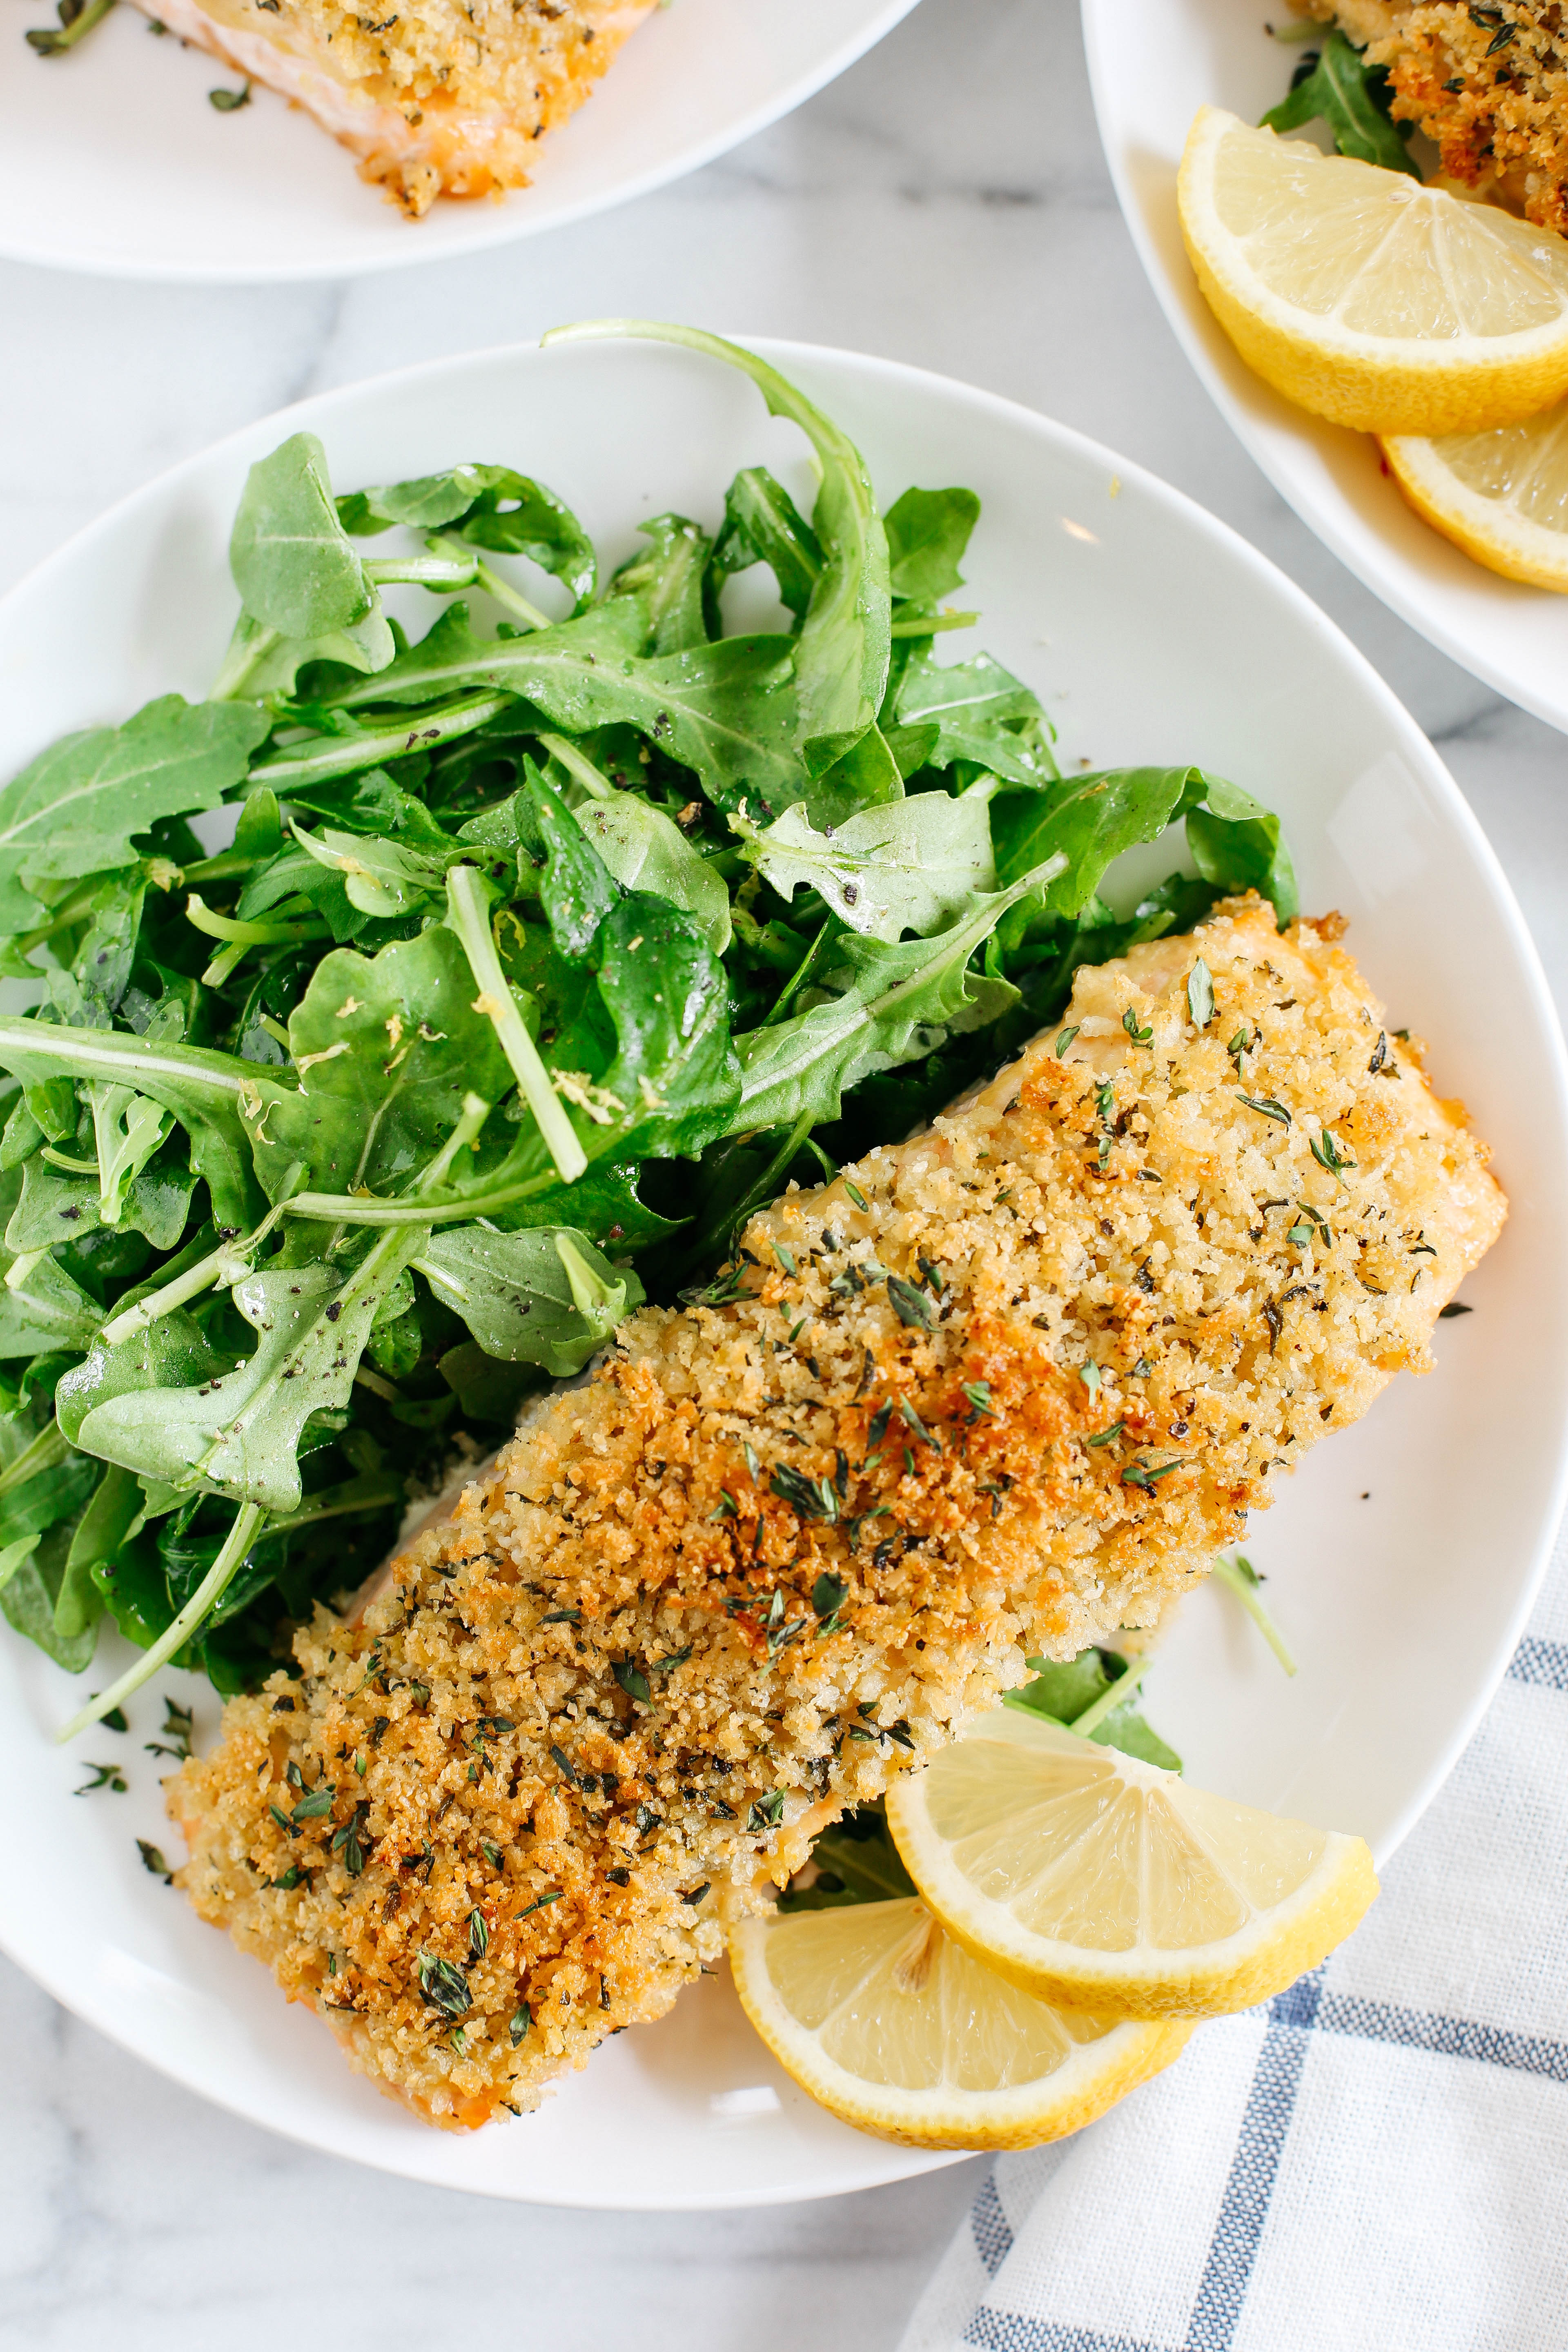 Hummus Crusted Salmon baked to perfection and served with a delicious Lemon Arugula Salad for the perfect healthy weeknight meal ready in under 30 minutes!